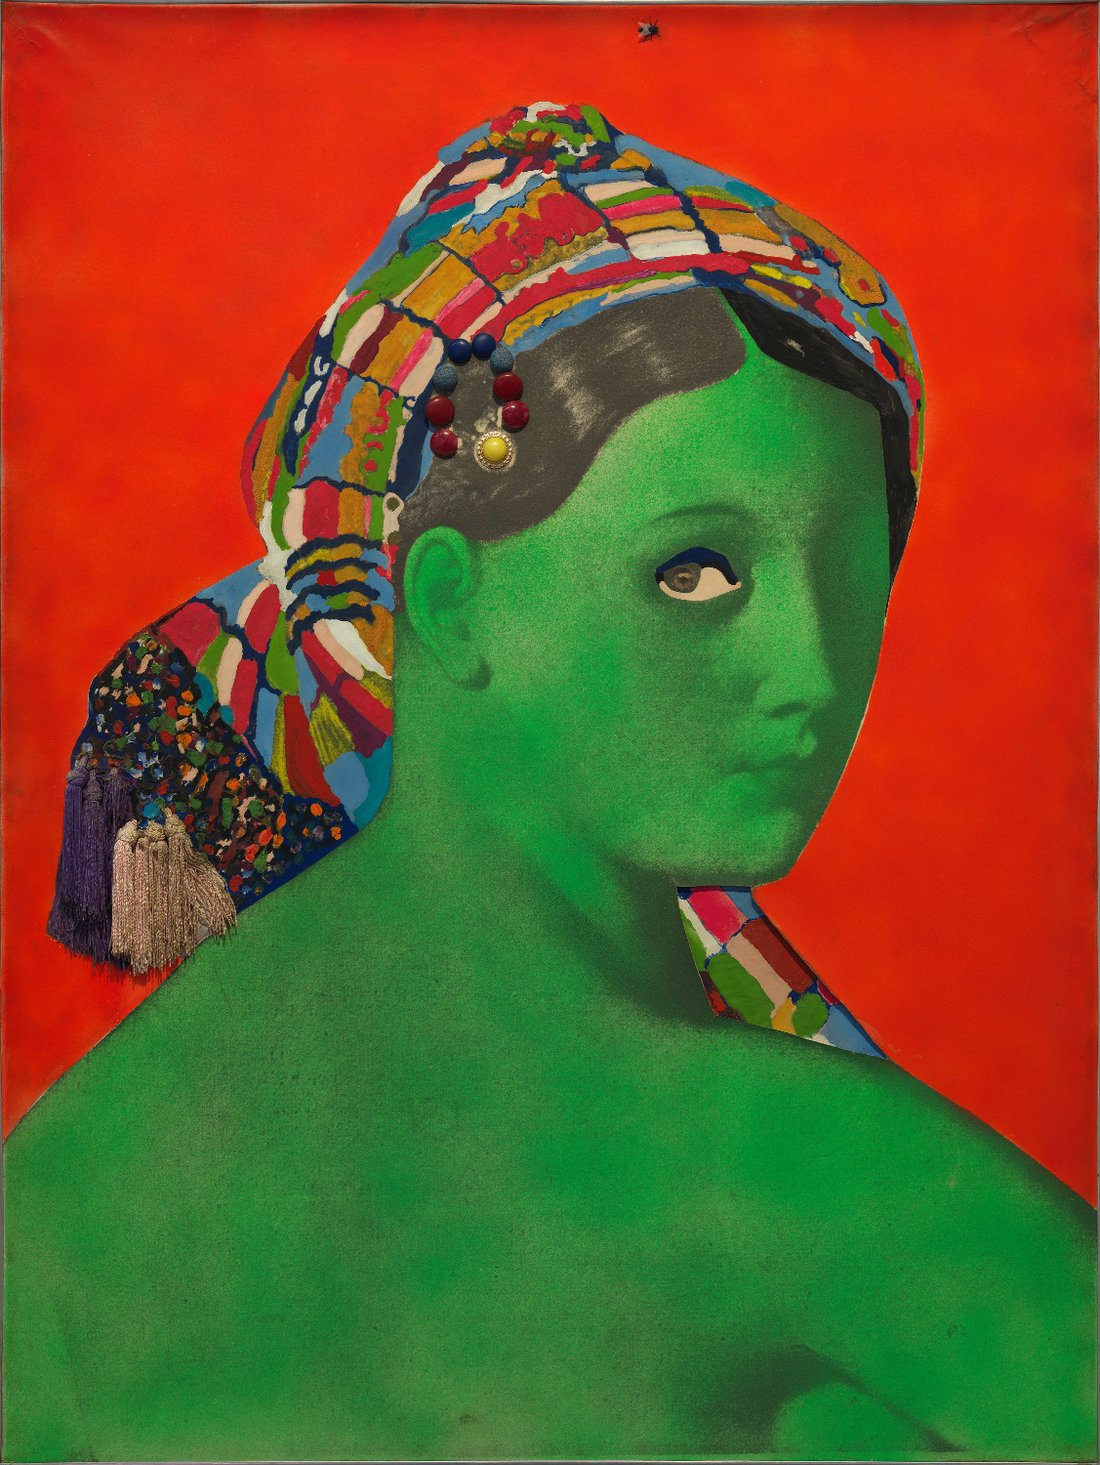 Martial Raysse, « Made in Japan - La grande odalisque », 1964